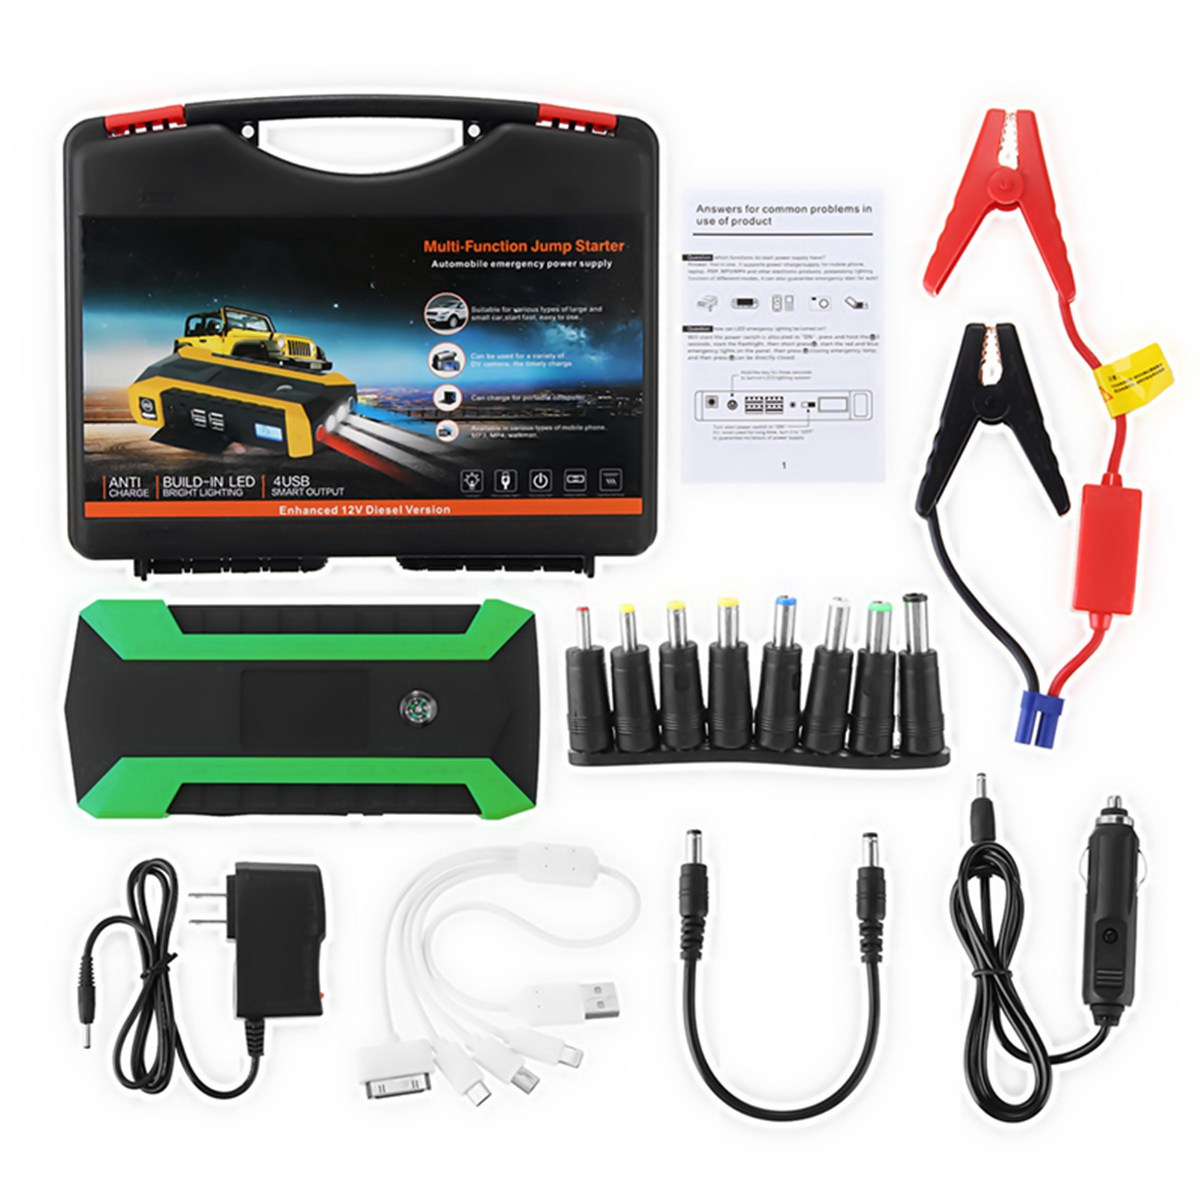 Car Jump Starter 89800mAh 12V 4USB Portable Car Battery Booster Charger Booster Power Bank Starting Device Car Starter 600A car jump starter emergency 69800mah 12v starting device 4usb sos light mobile power bank car charger for car battery booster led